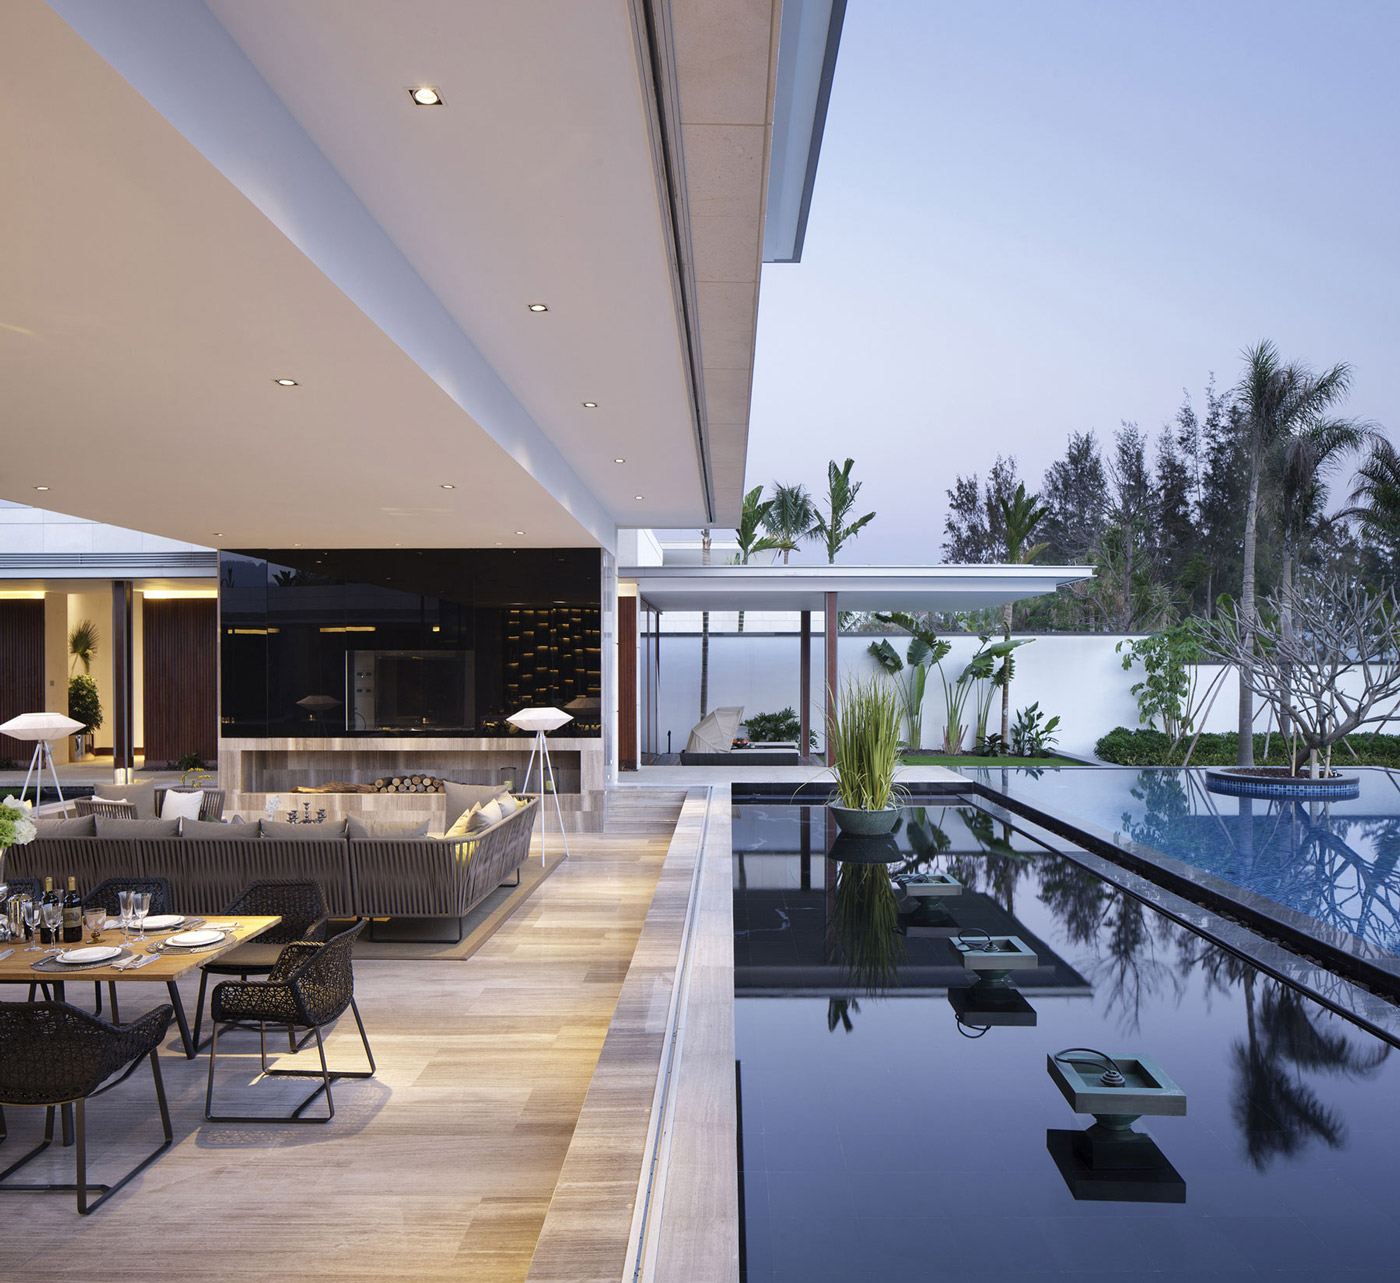 Water Feature, Pool, Living Space, Beachside Villas in Lingshui, Hainan, China